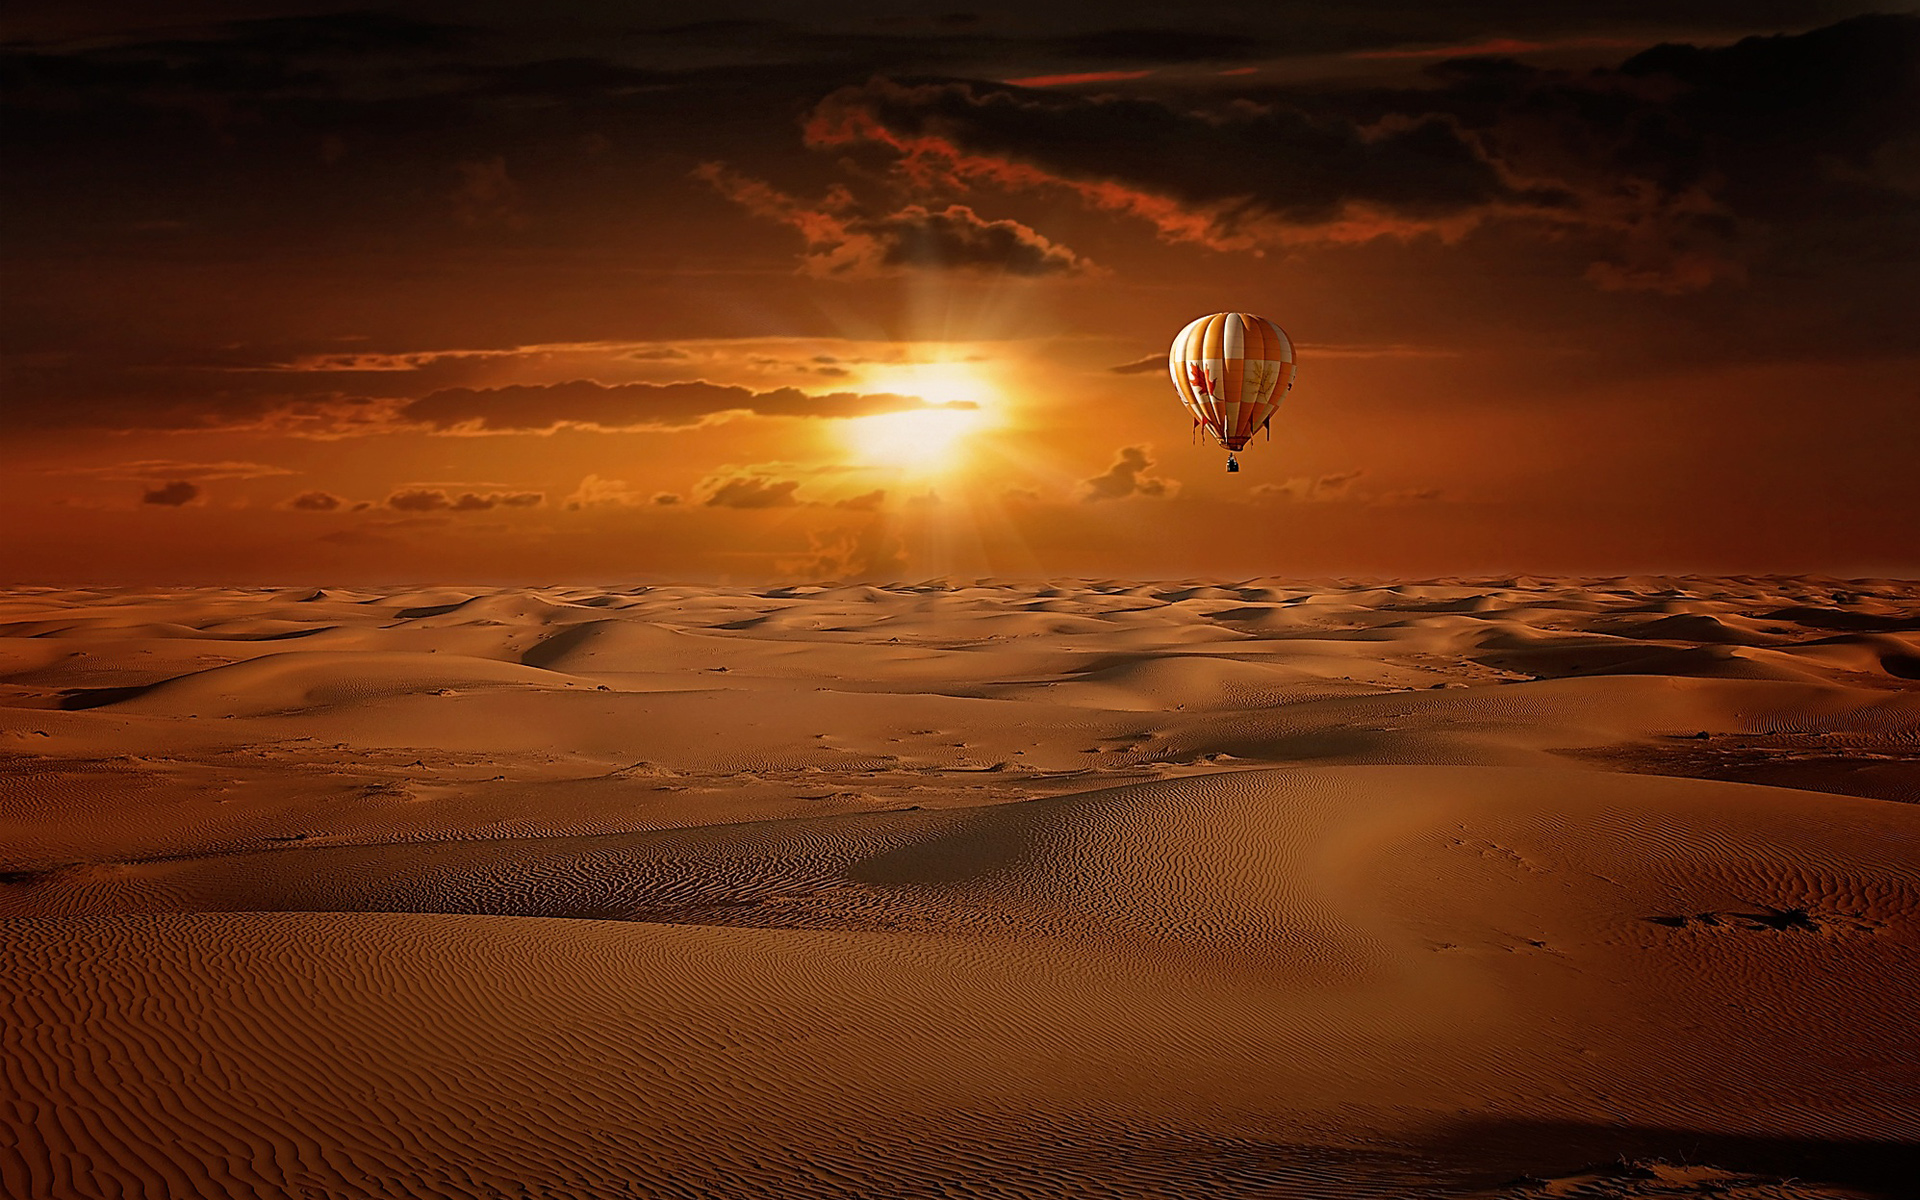 Hot Air Balloon Desert Sunrise774956322 - Hot Air Balloon Desert Sunrise - York, sunrise, Desert, Balloon